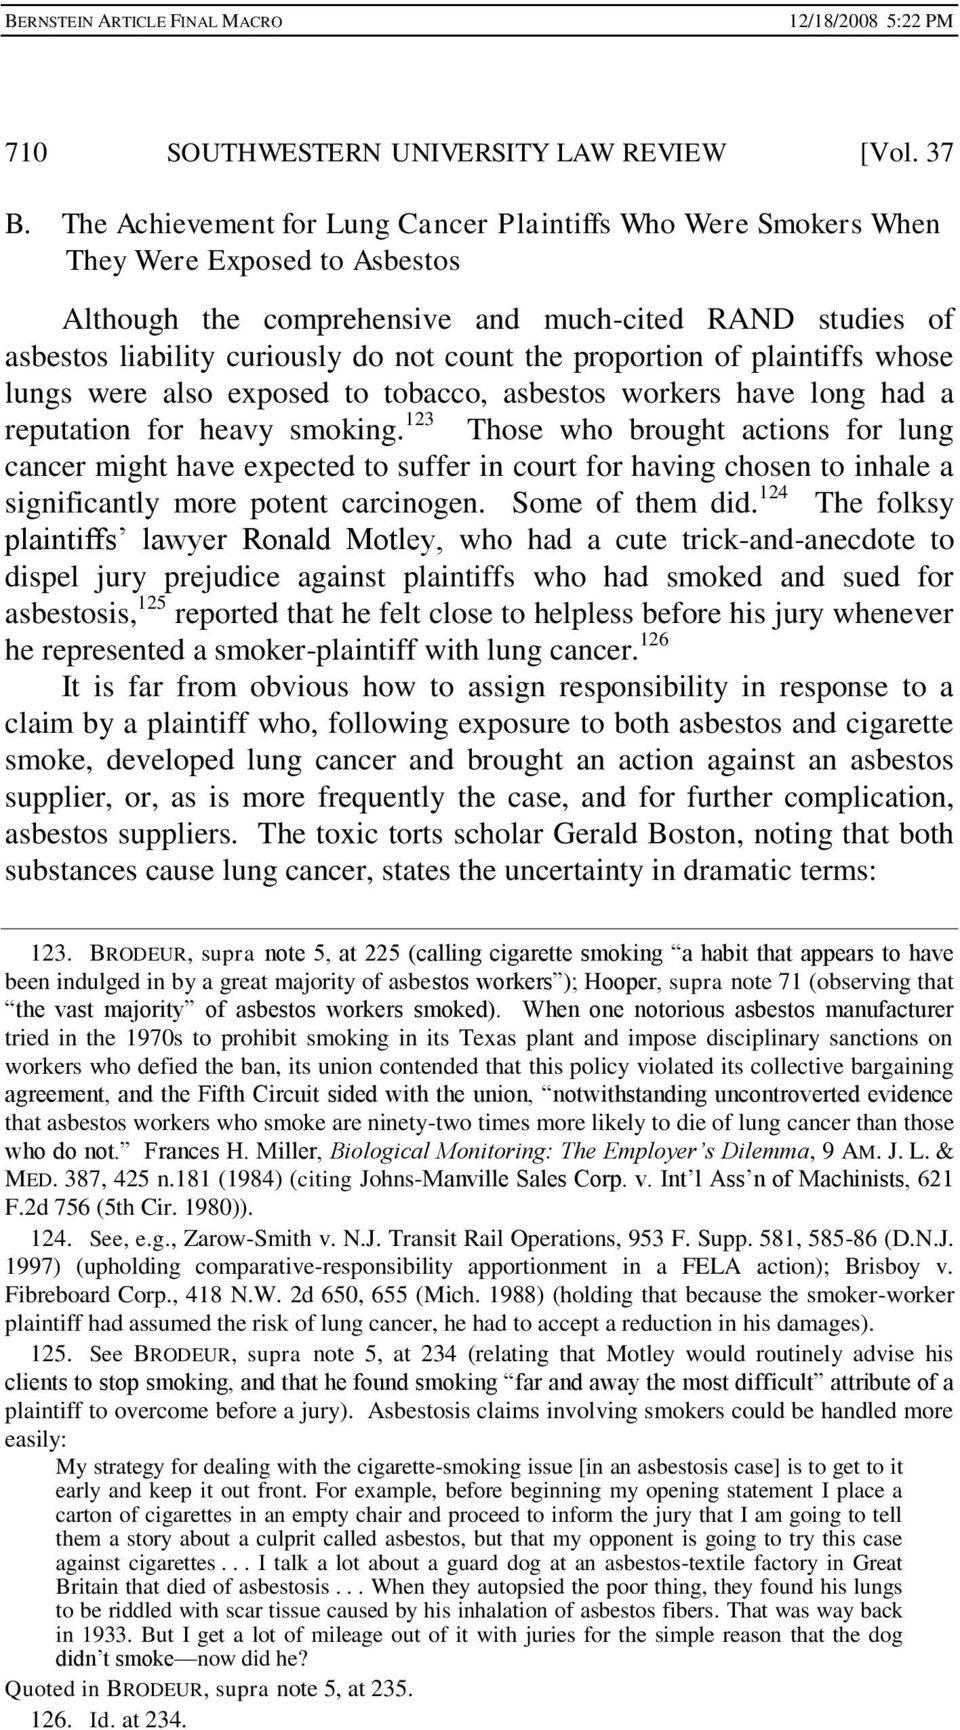 proportion of plaintiffs whose lungs were also exposed to tobacco, asbestos workers have long had a reputation for heavy smoking.